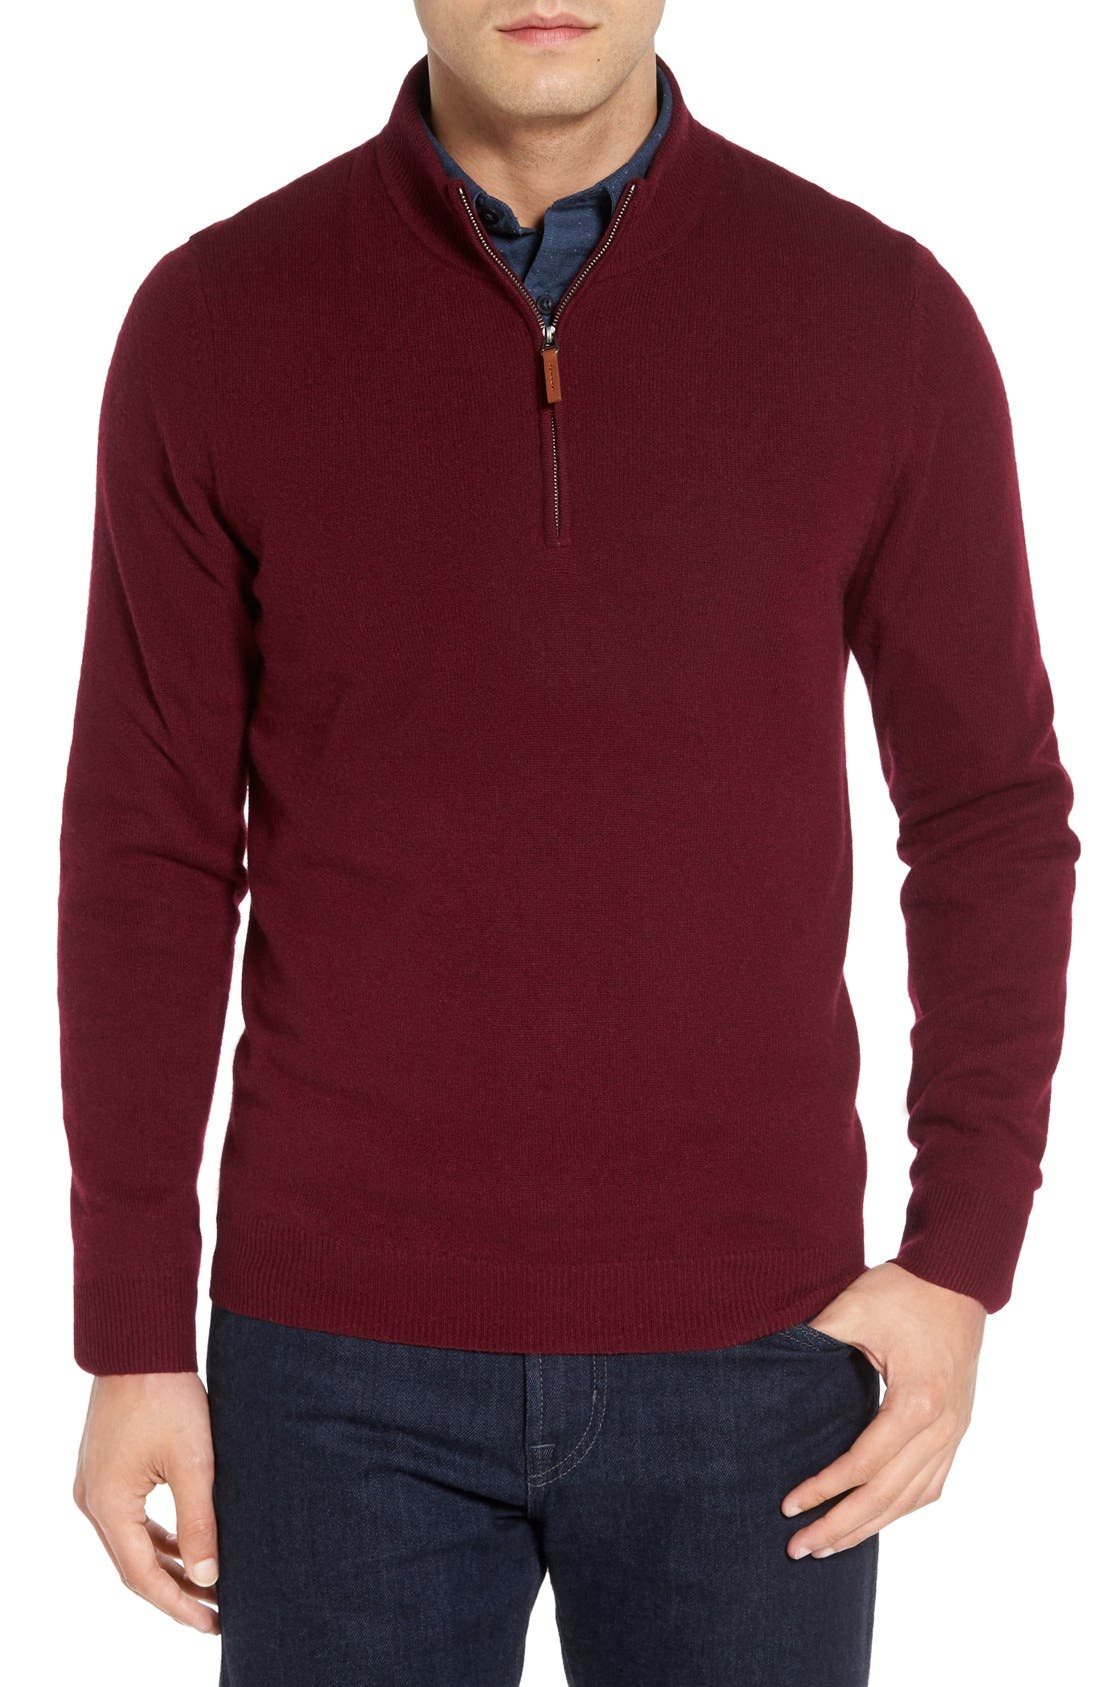 Alternate Image 1 Selected - Nordstrom Men's Shop Regular Fit Cashmere Quarter Zip Pullover (Regular & Tall)